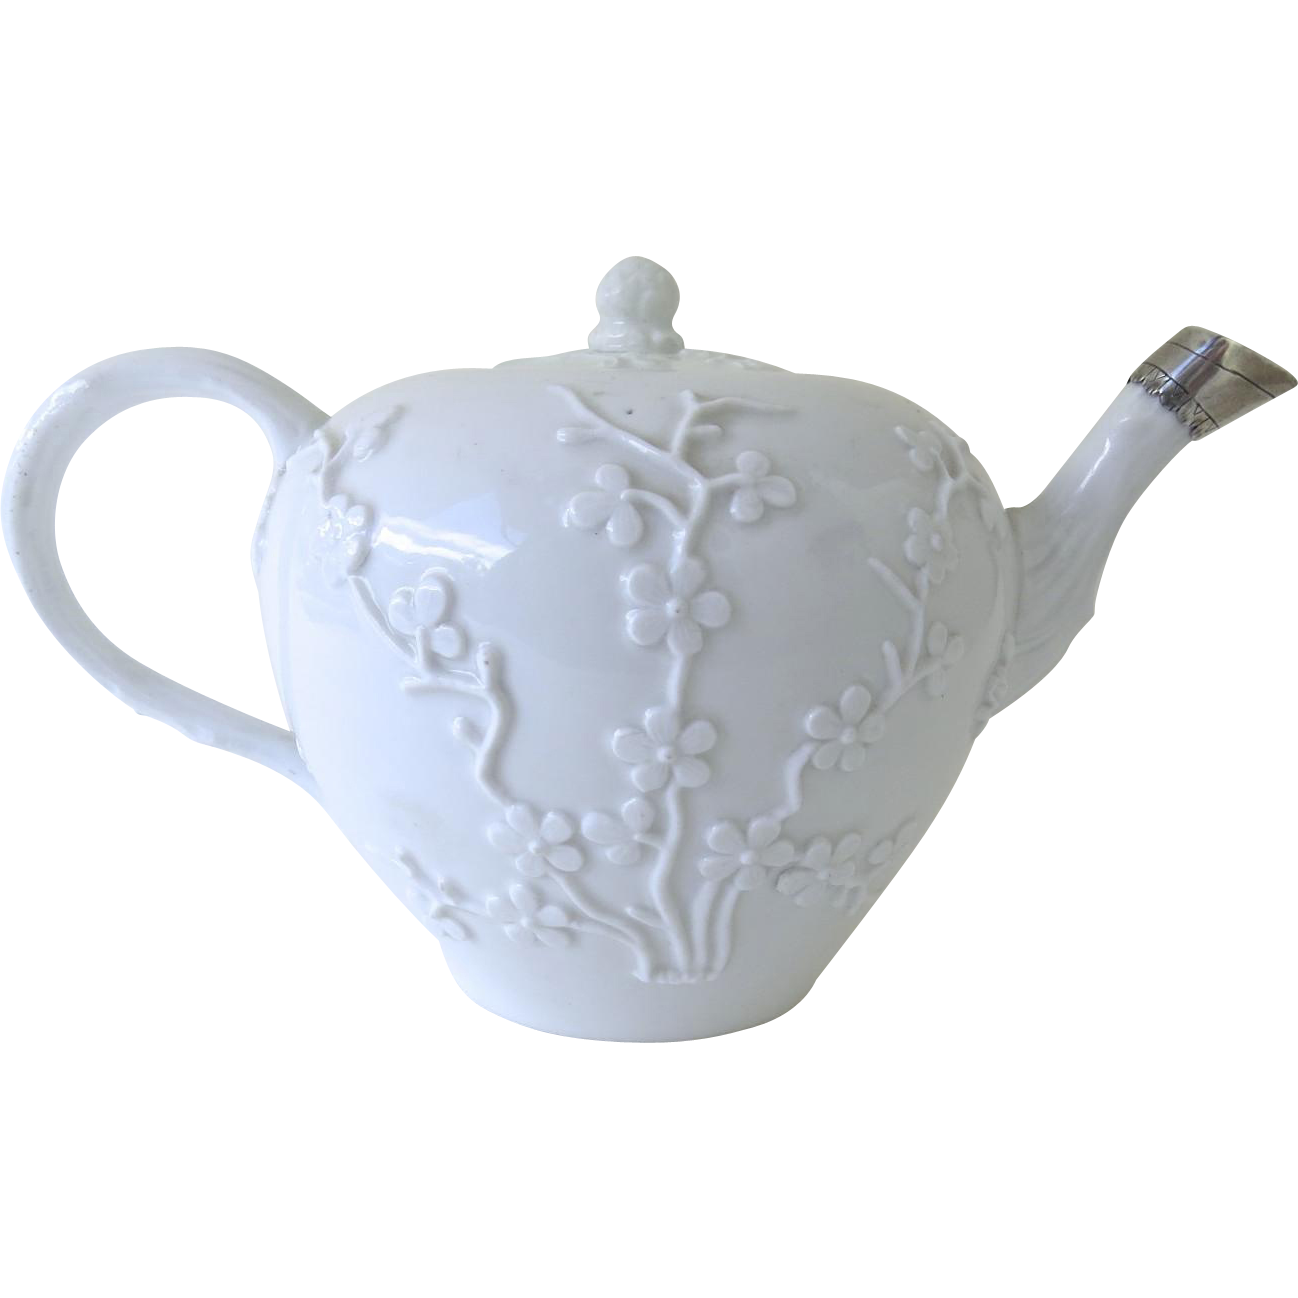 Meissen Porcelain Teapot with Raised Relief Decoration, circa 1780 1774 -1810 Meissen Era (P.839)